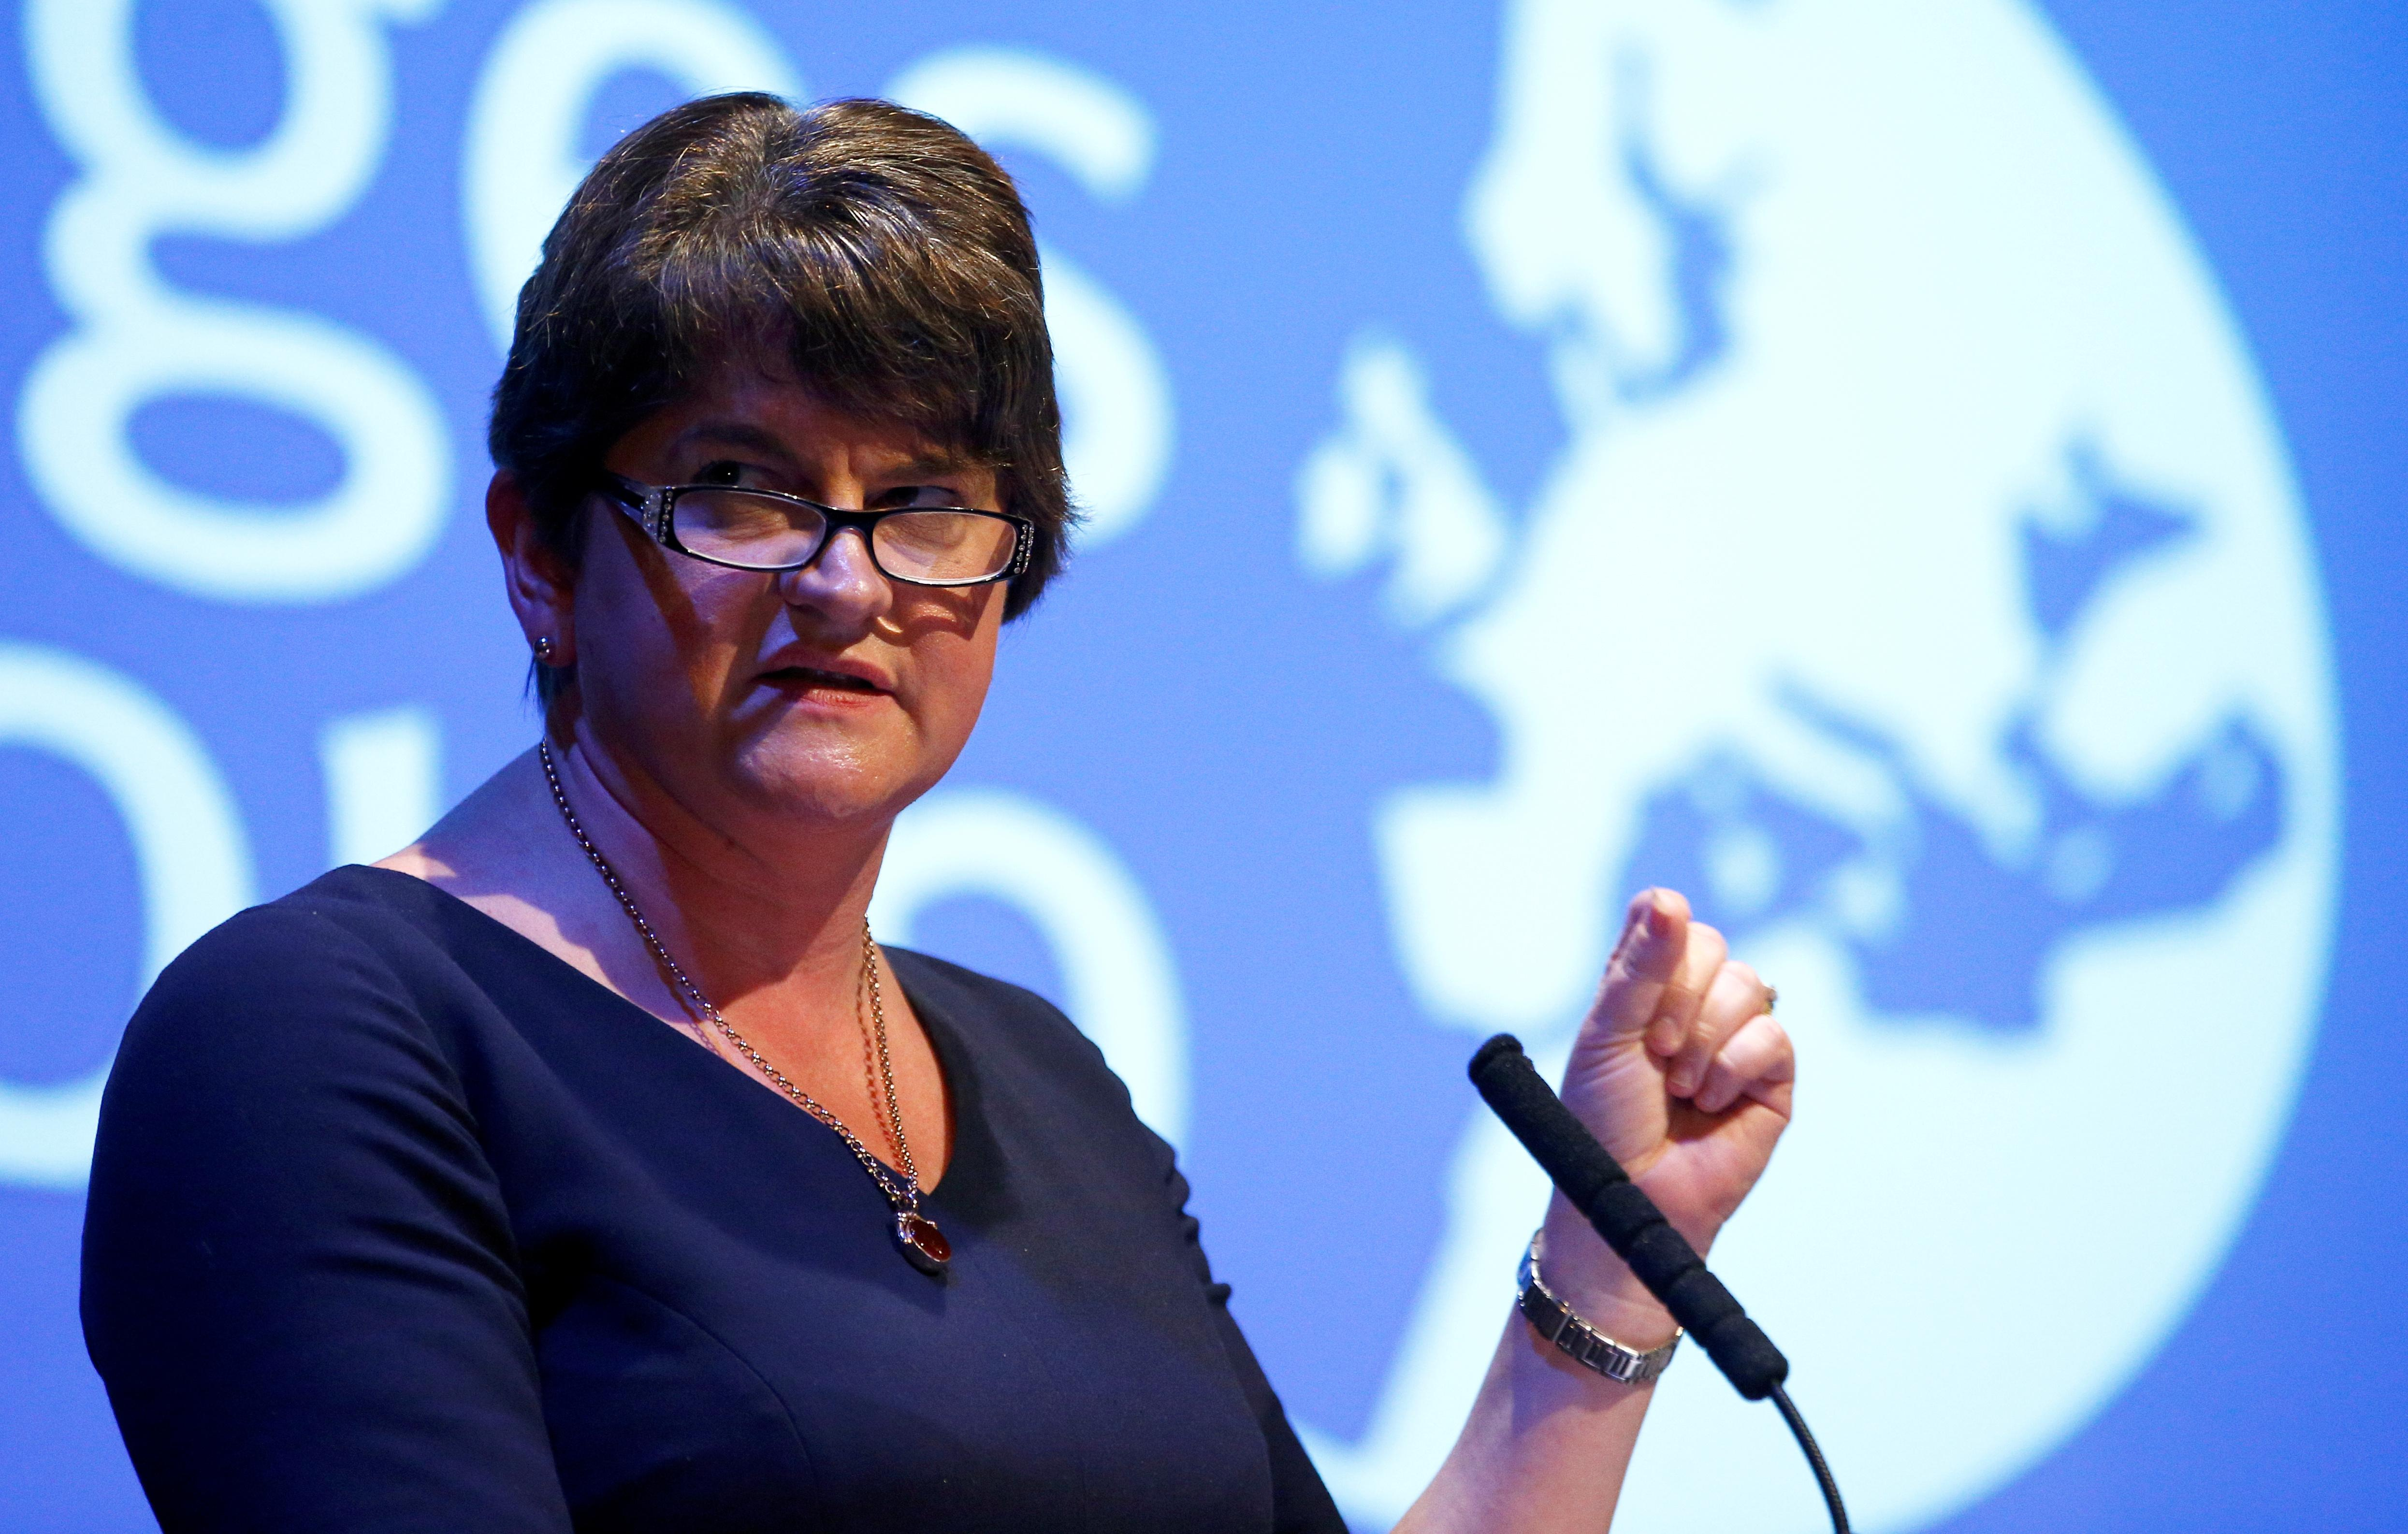 Northern Ireland's DUP says it cannot support Brexit deal as it stands